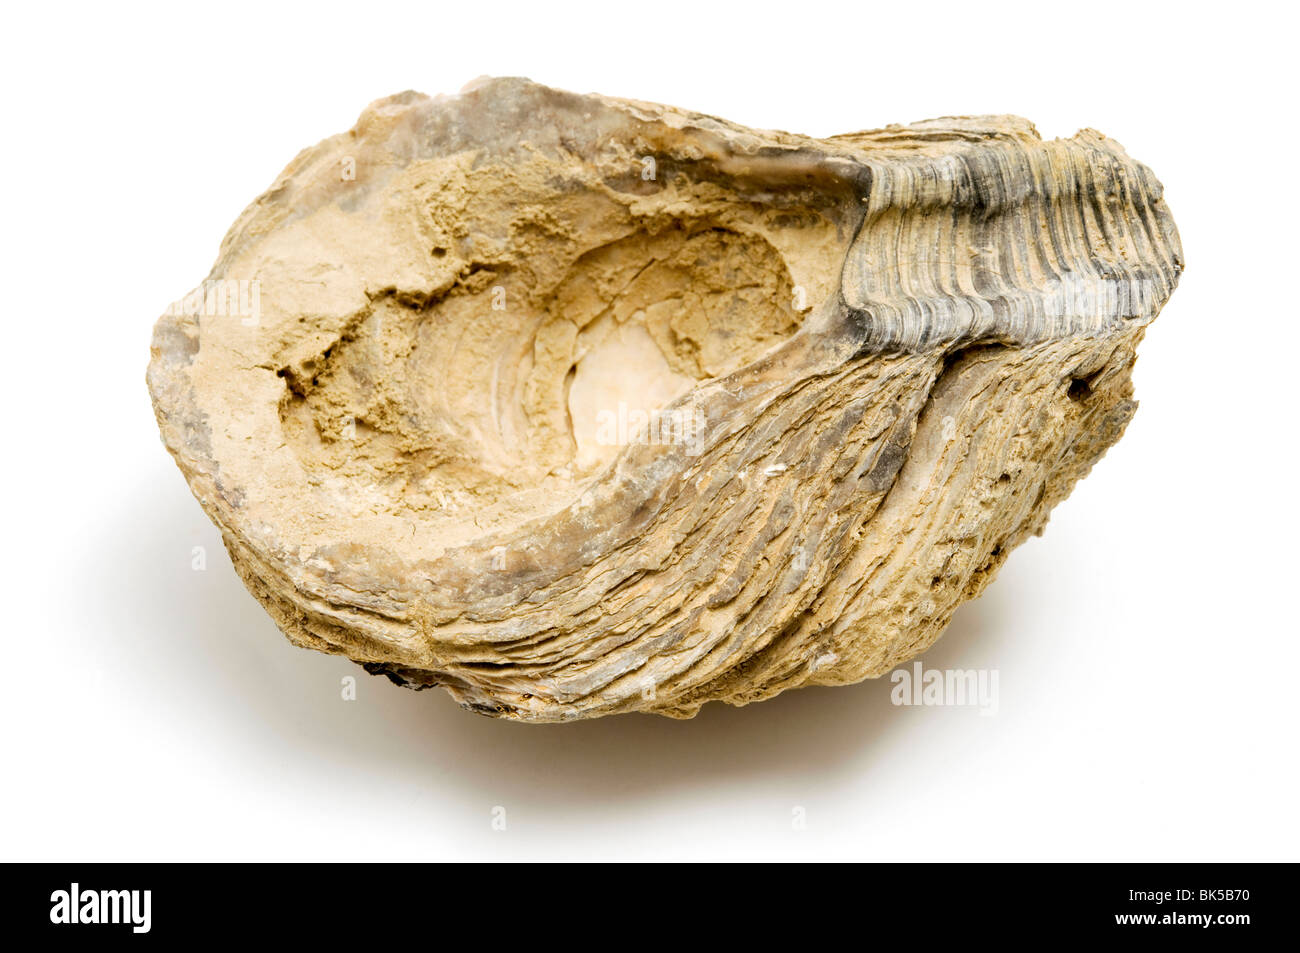 Fossil shell found in Montecchio, Italy - Stock Image